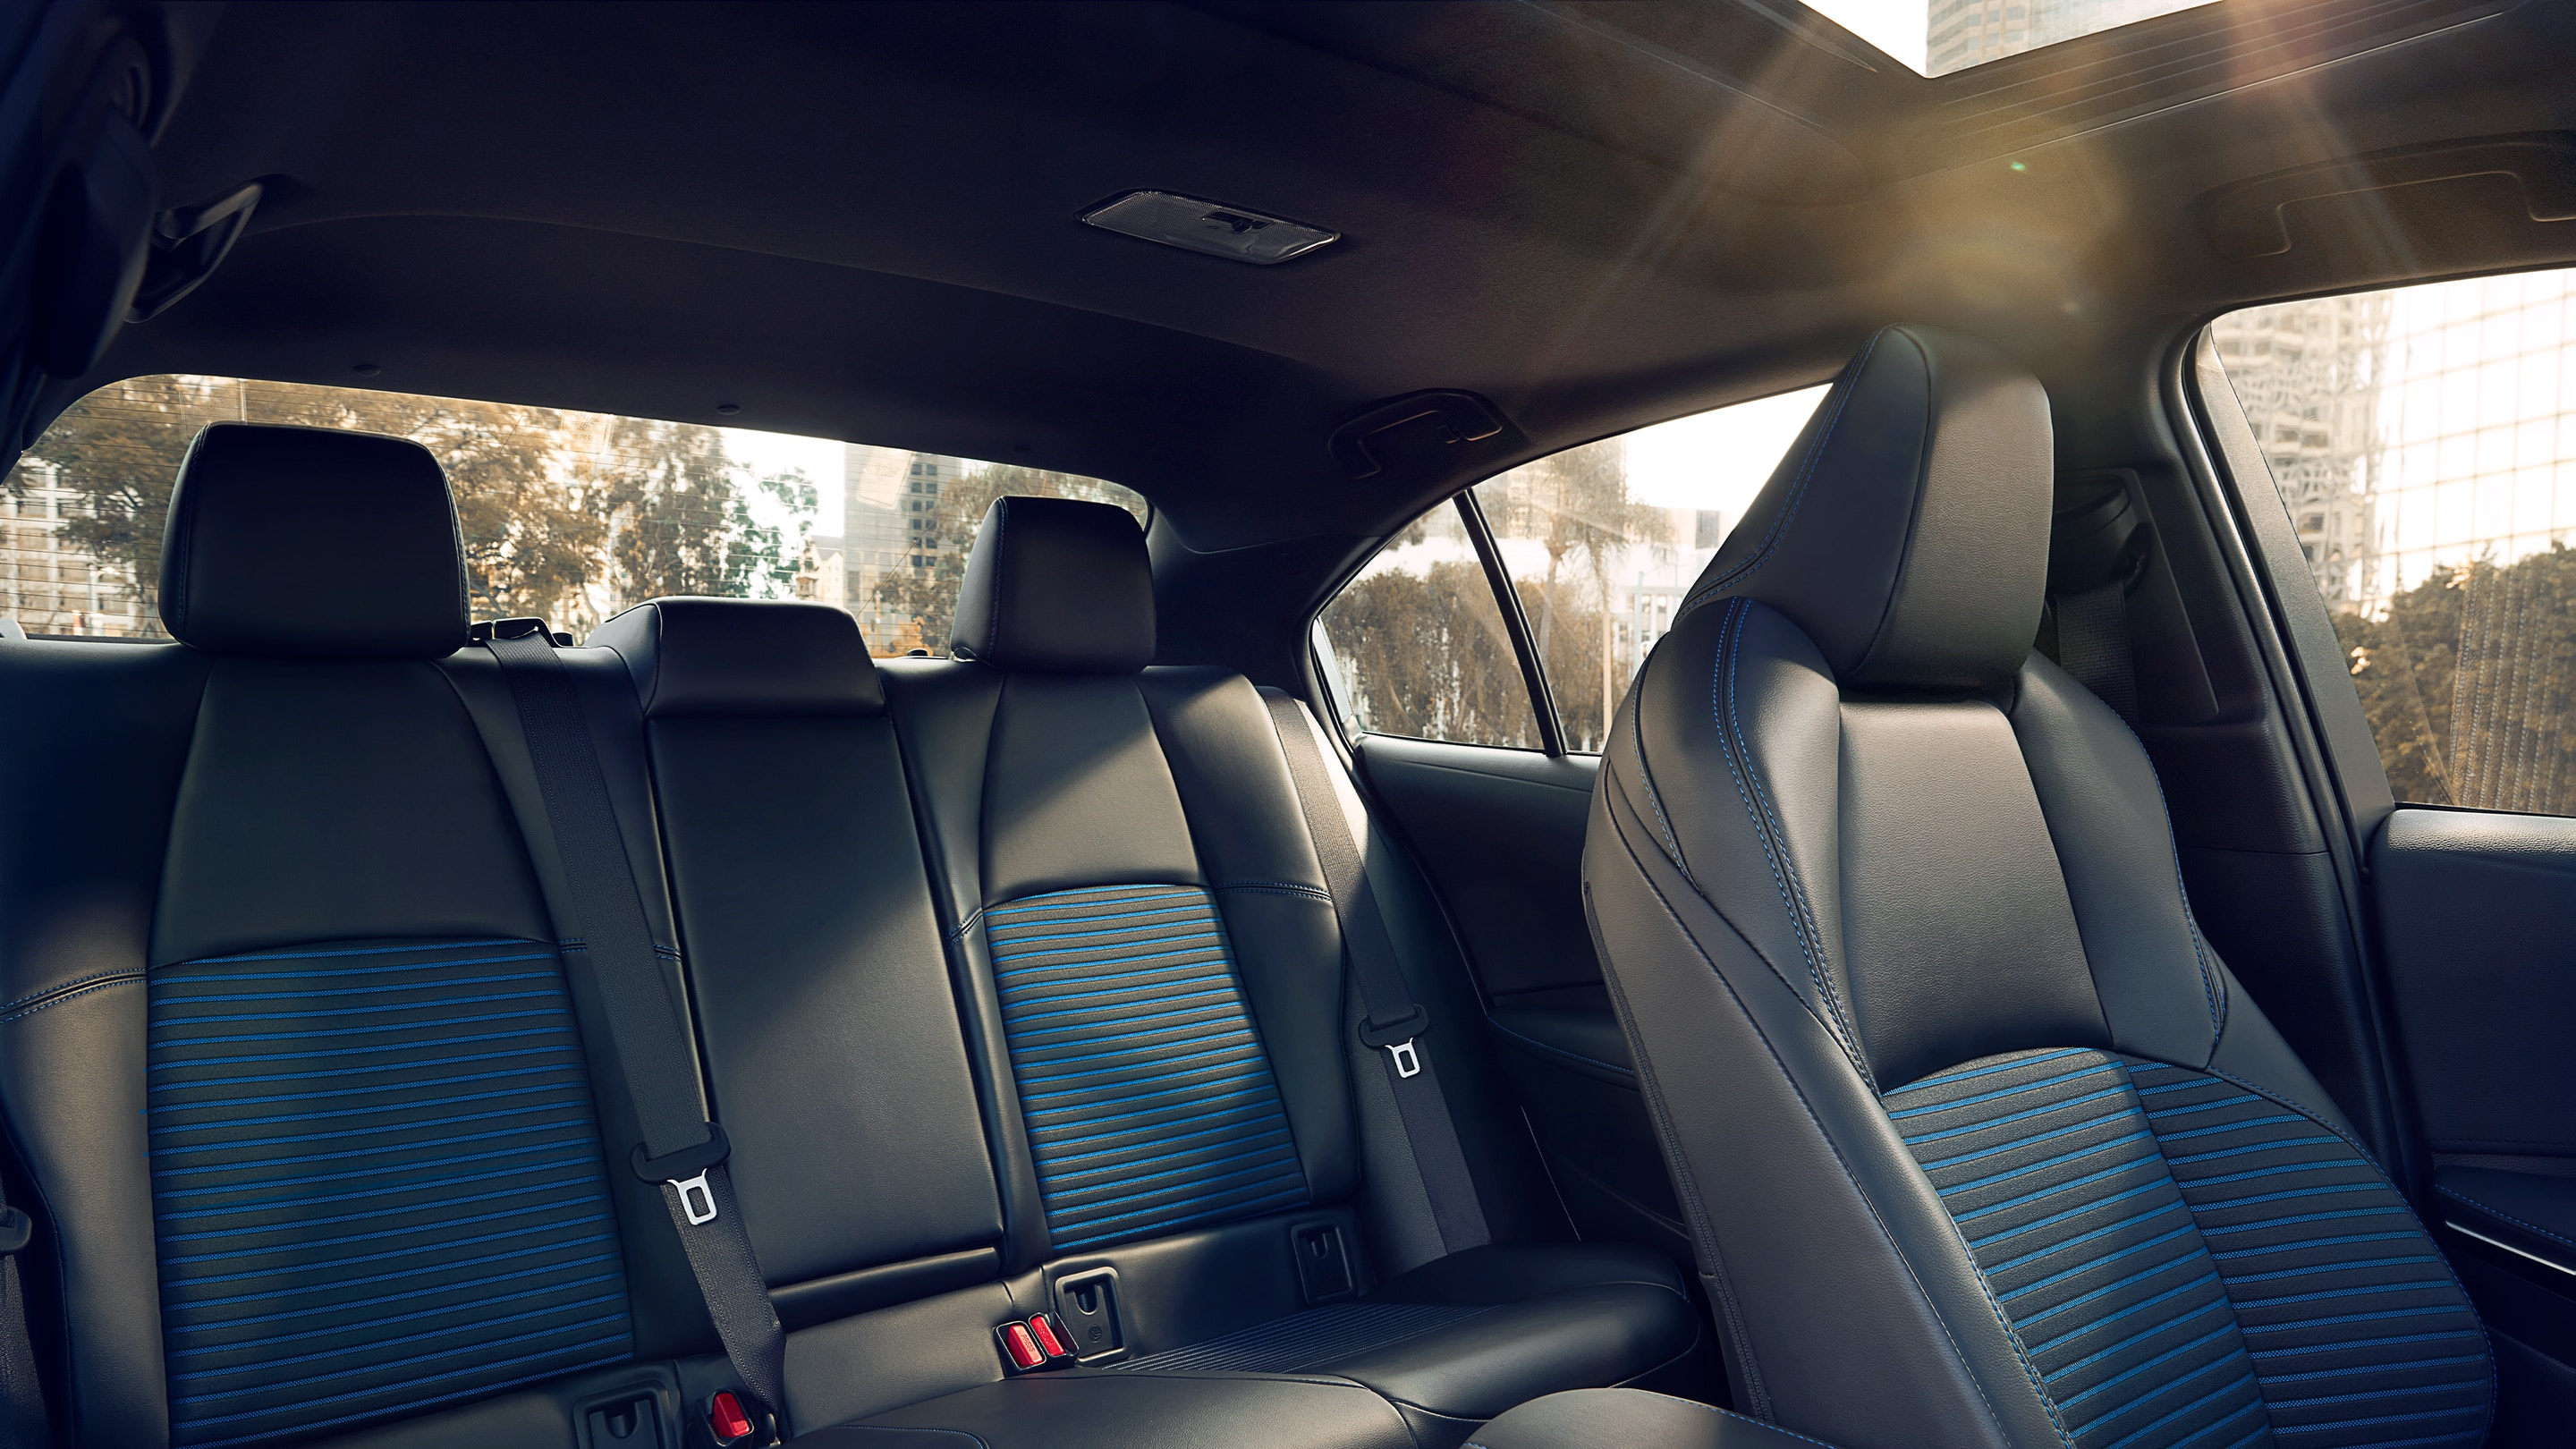 Cozy Cabin of the 2020 Toyota Corolla